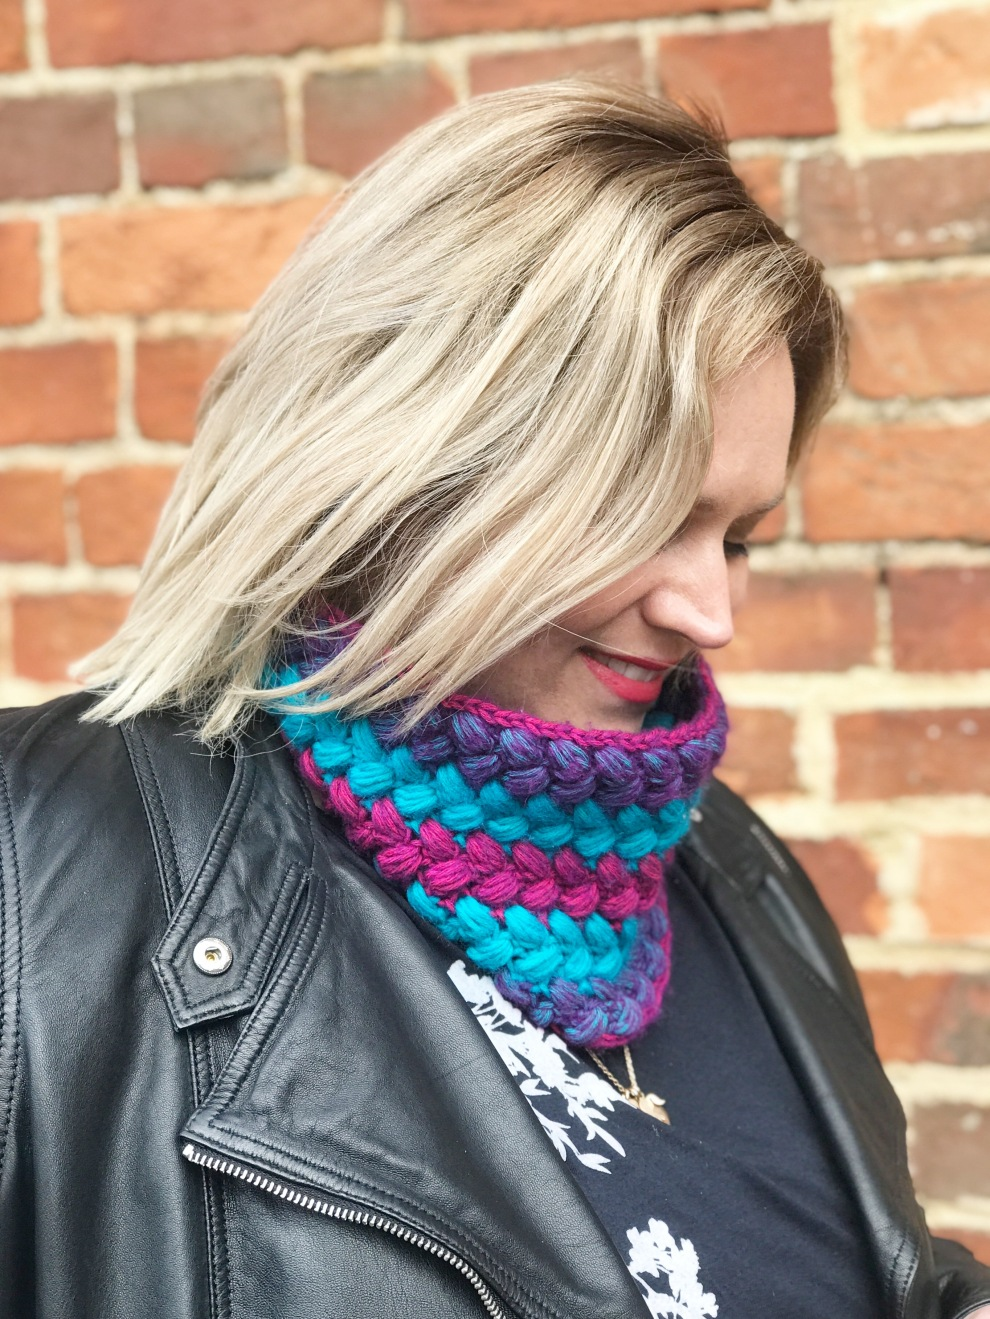 Crochet Braided Cowl, free pattern using Scheepjes River Washed, by Nerissa Muijs